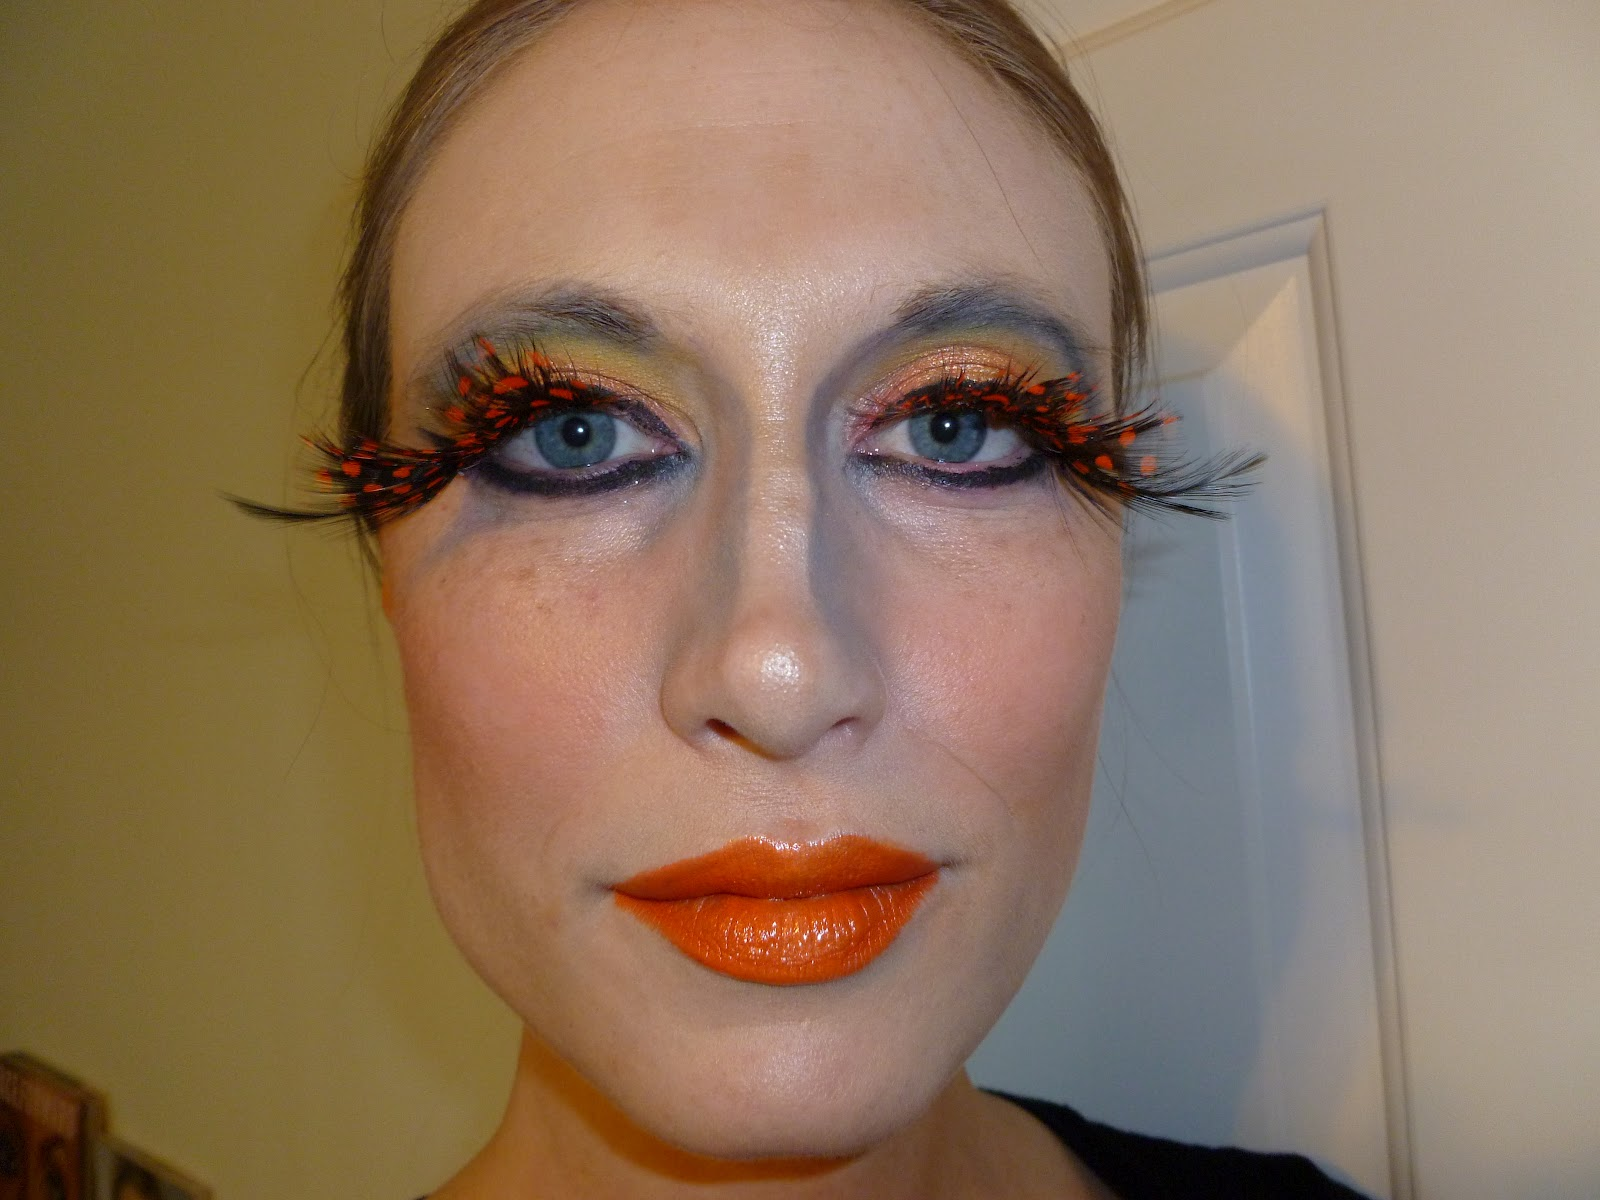 Makeup Matters: Avant Garde- High Fashion Makeup